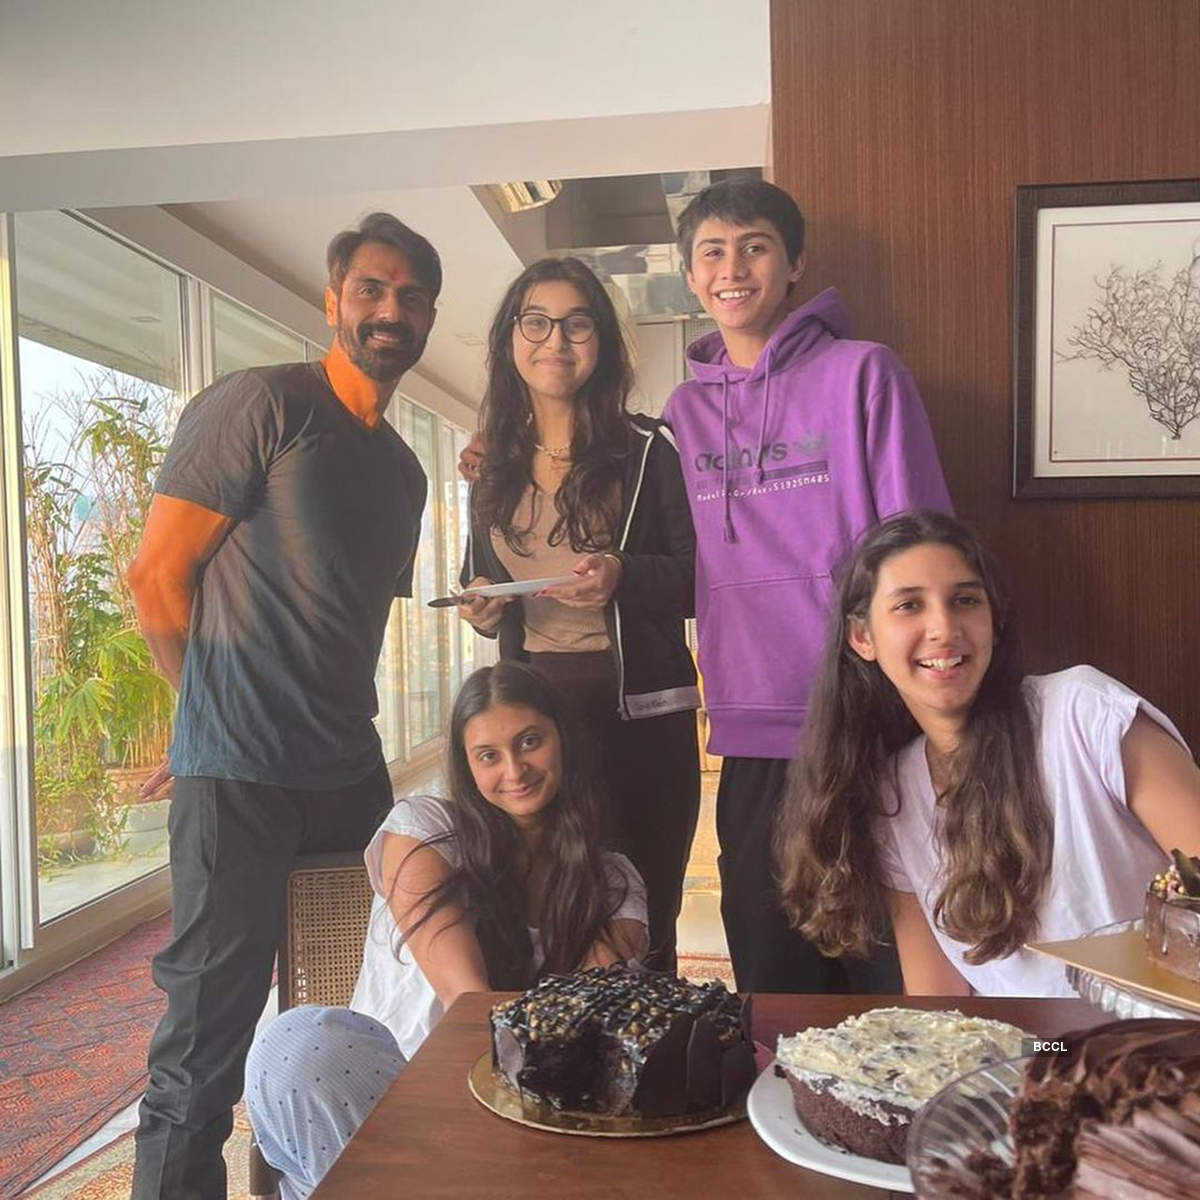 Arjun Rampal spent quality time with loved ones on his birthday!